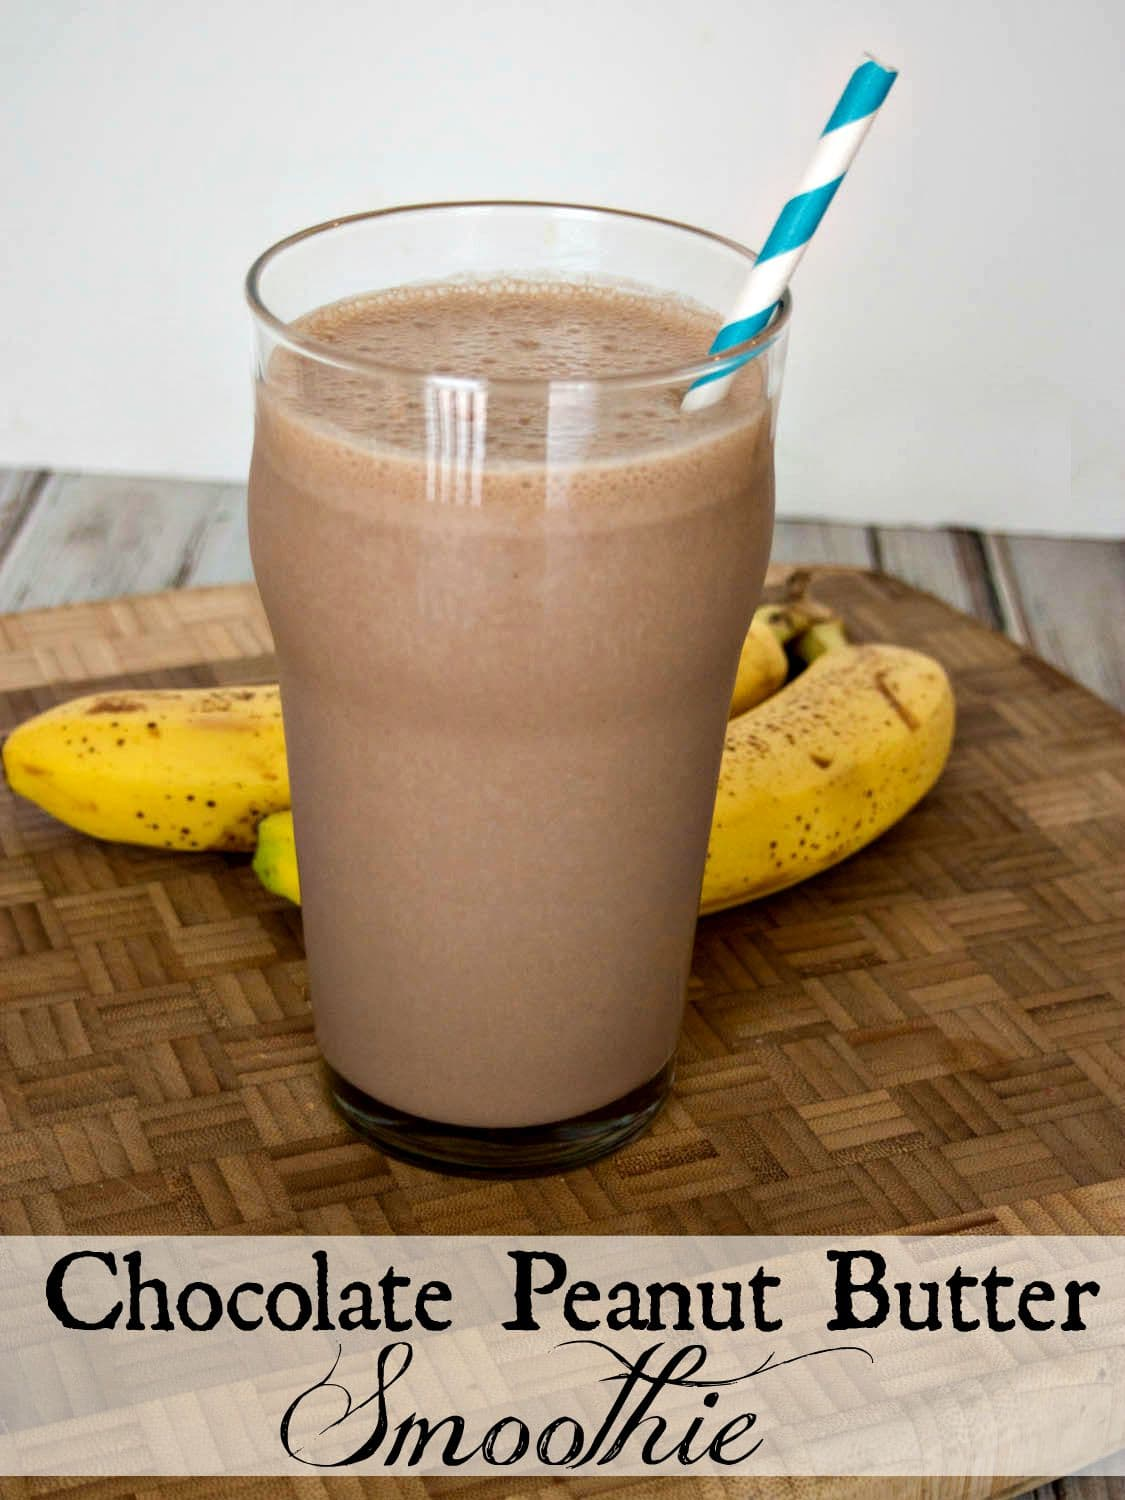 Chocolate Peanut Butter Smoothie - a creamy dairy free smoothie made with cashew milk, banana and peanut butter